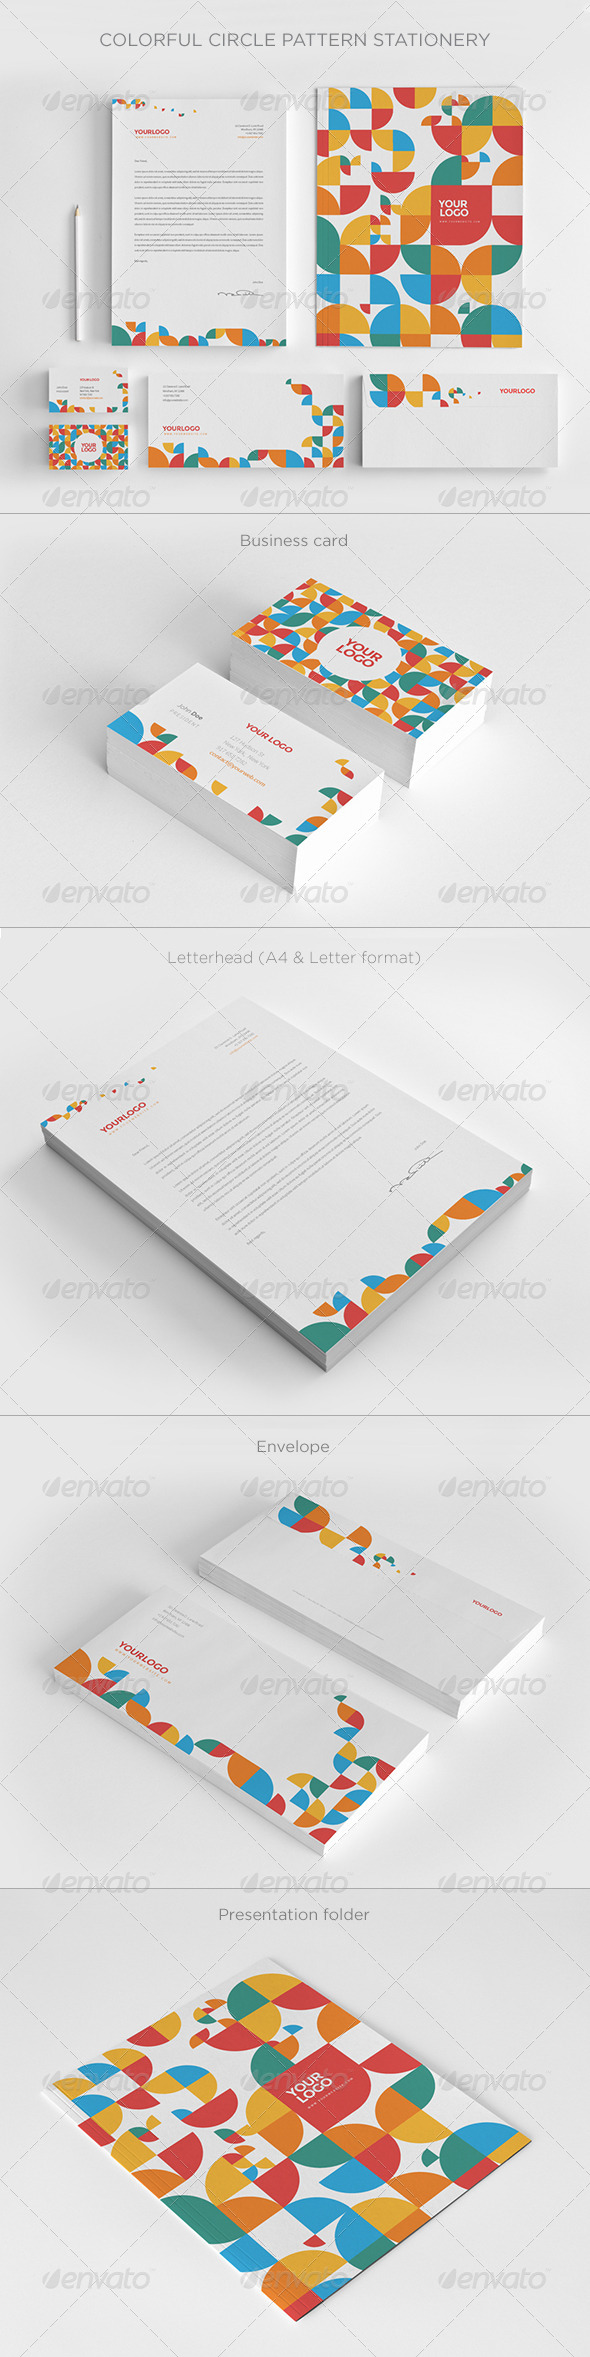 GraphicRiver Colorful Circle Pattern Stationery 8056316